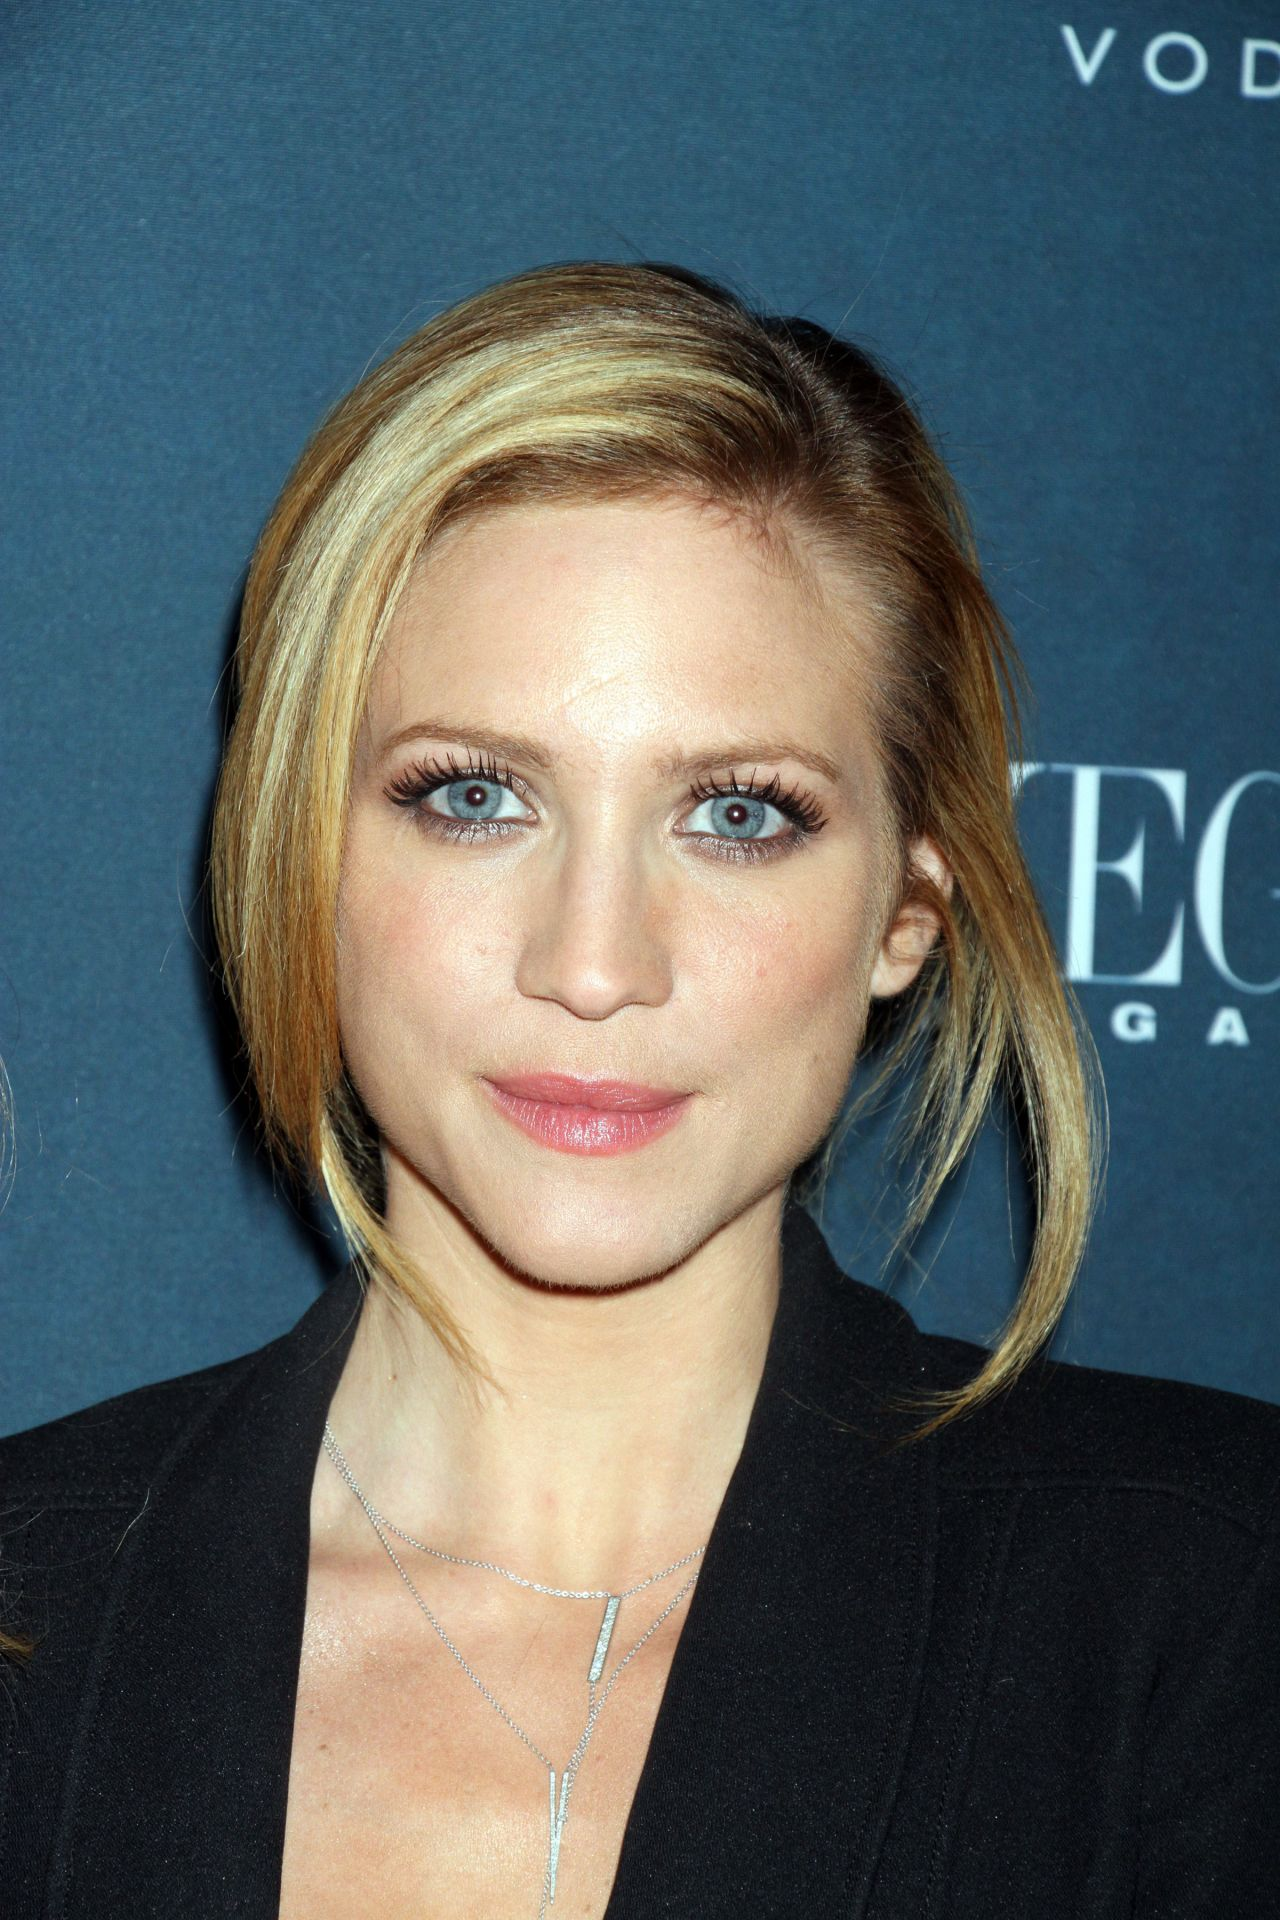 Brittany Snow - 2015 Vegas Magazine Celebration in Las Vegas Brittany Snow